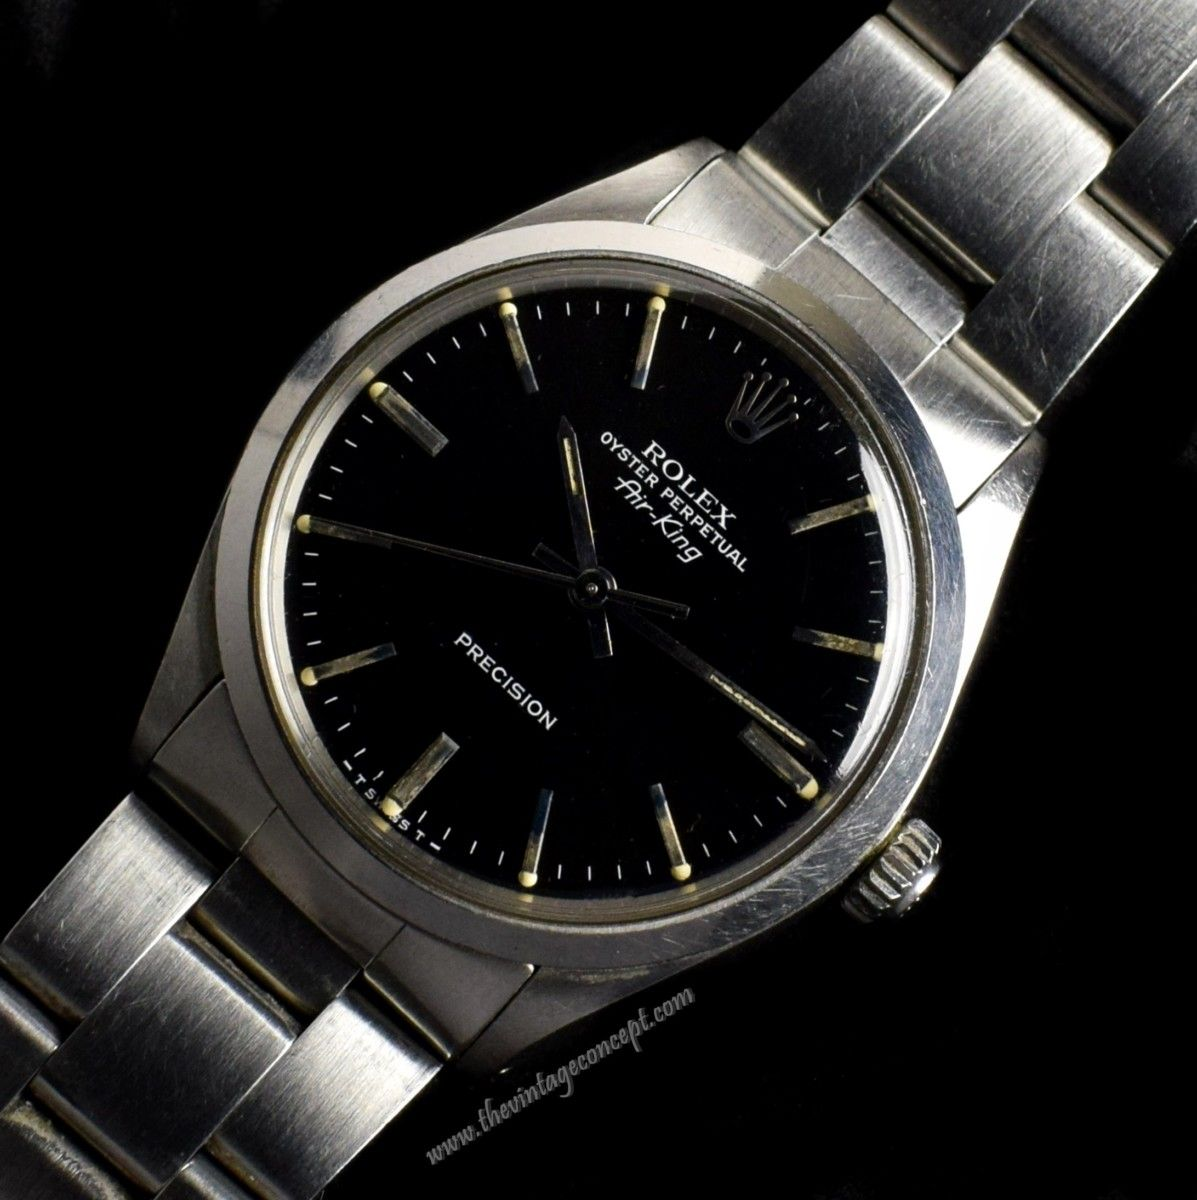 Rolex Air King Black Dial 5500 (SOLD)